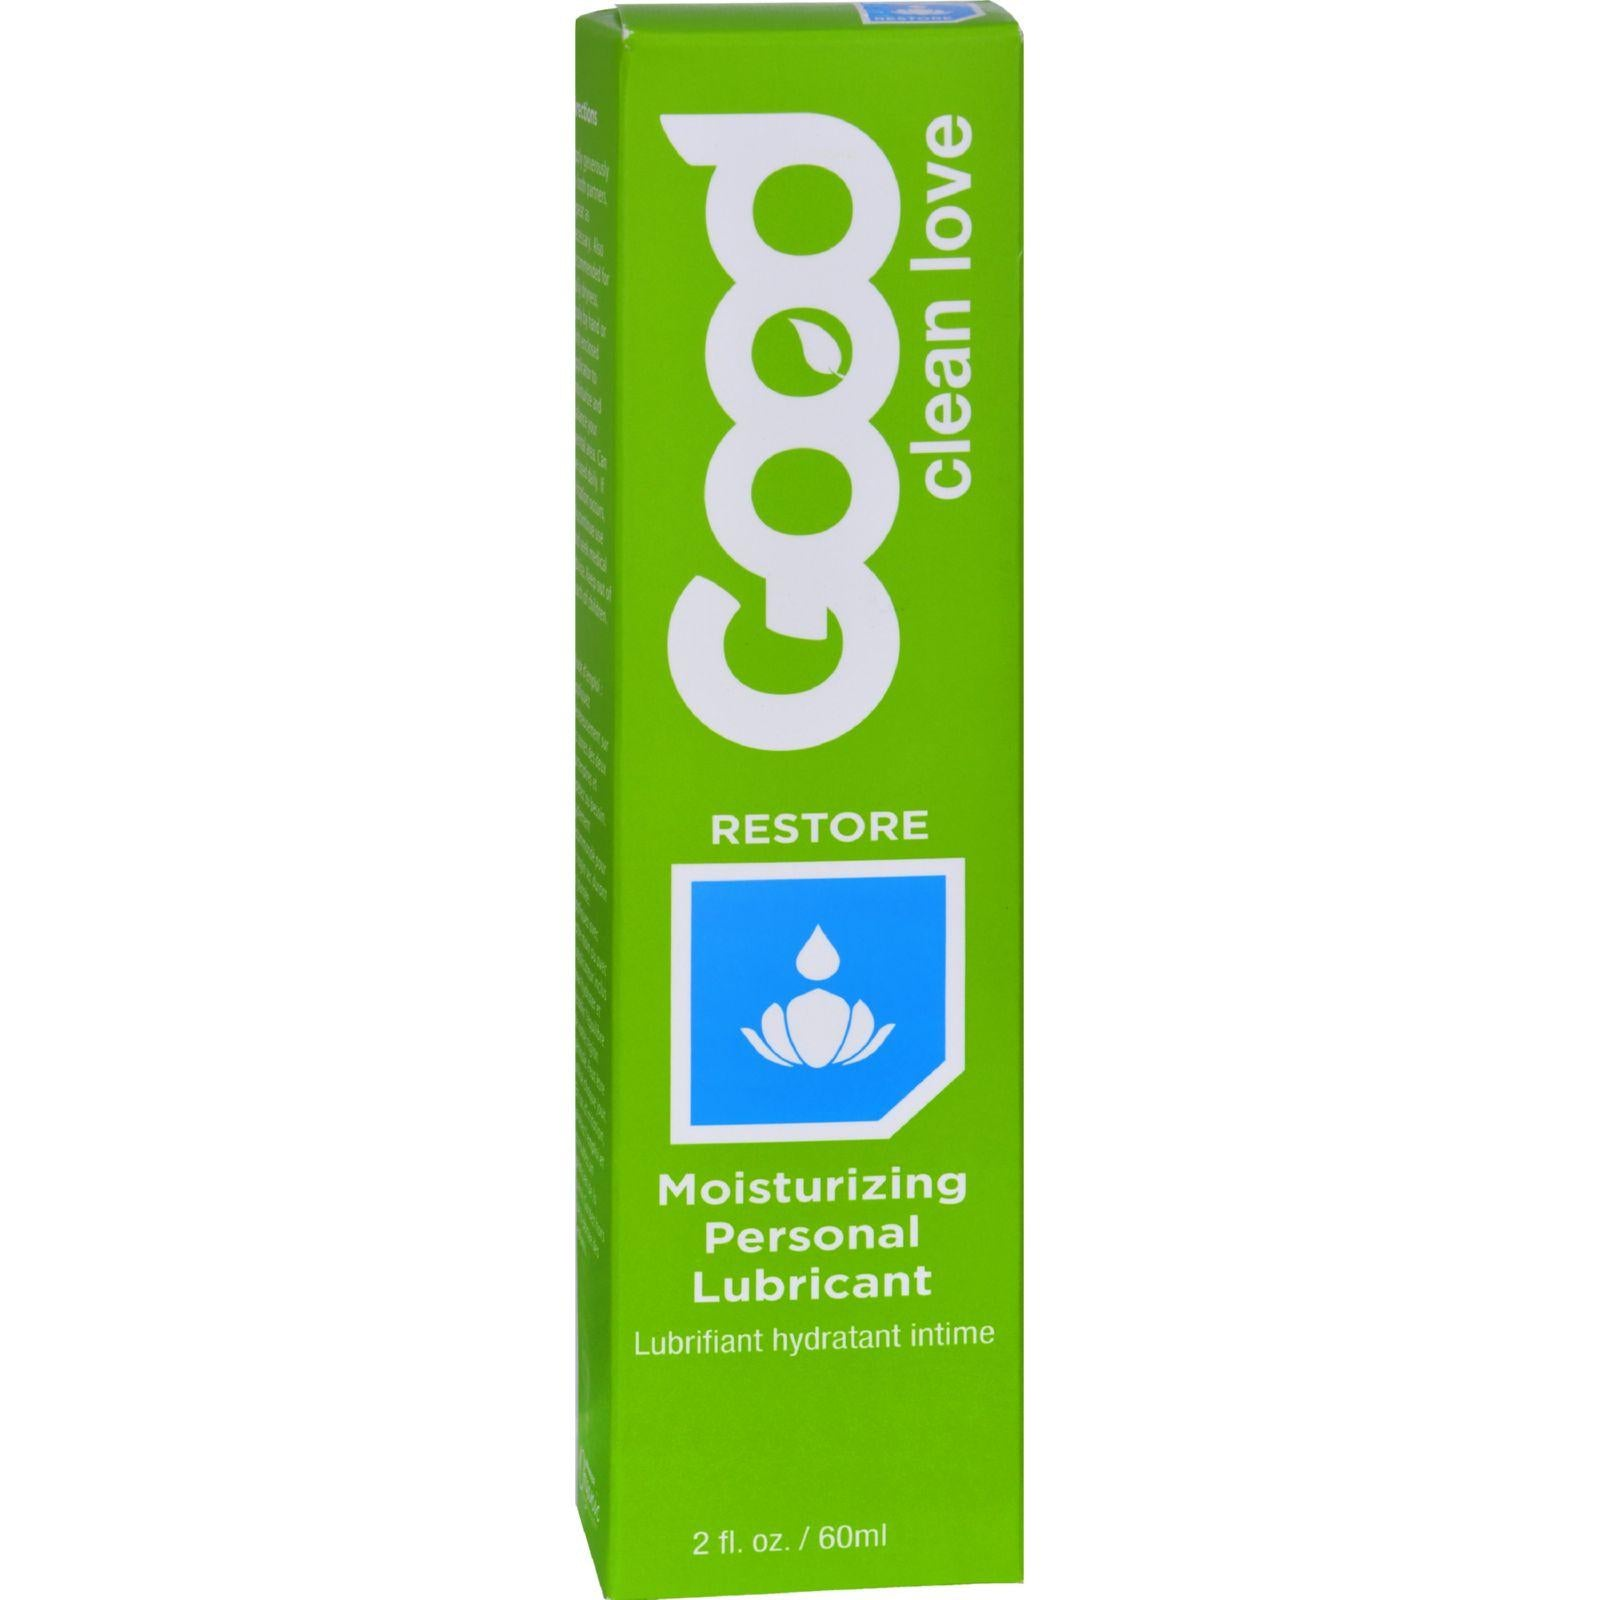 Good Clean Love Personal Lubricant - Moisturizing - Biomatch Restore - 2 Oz